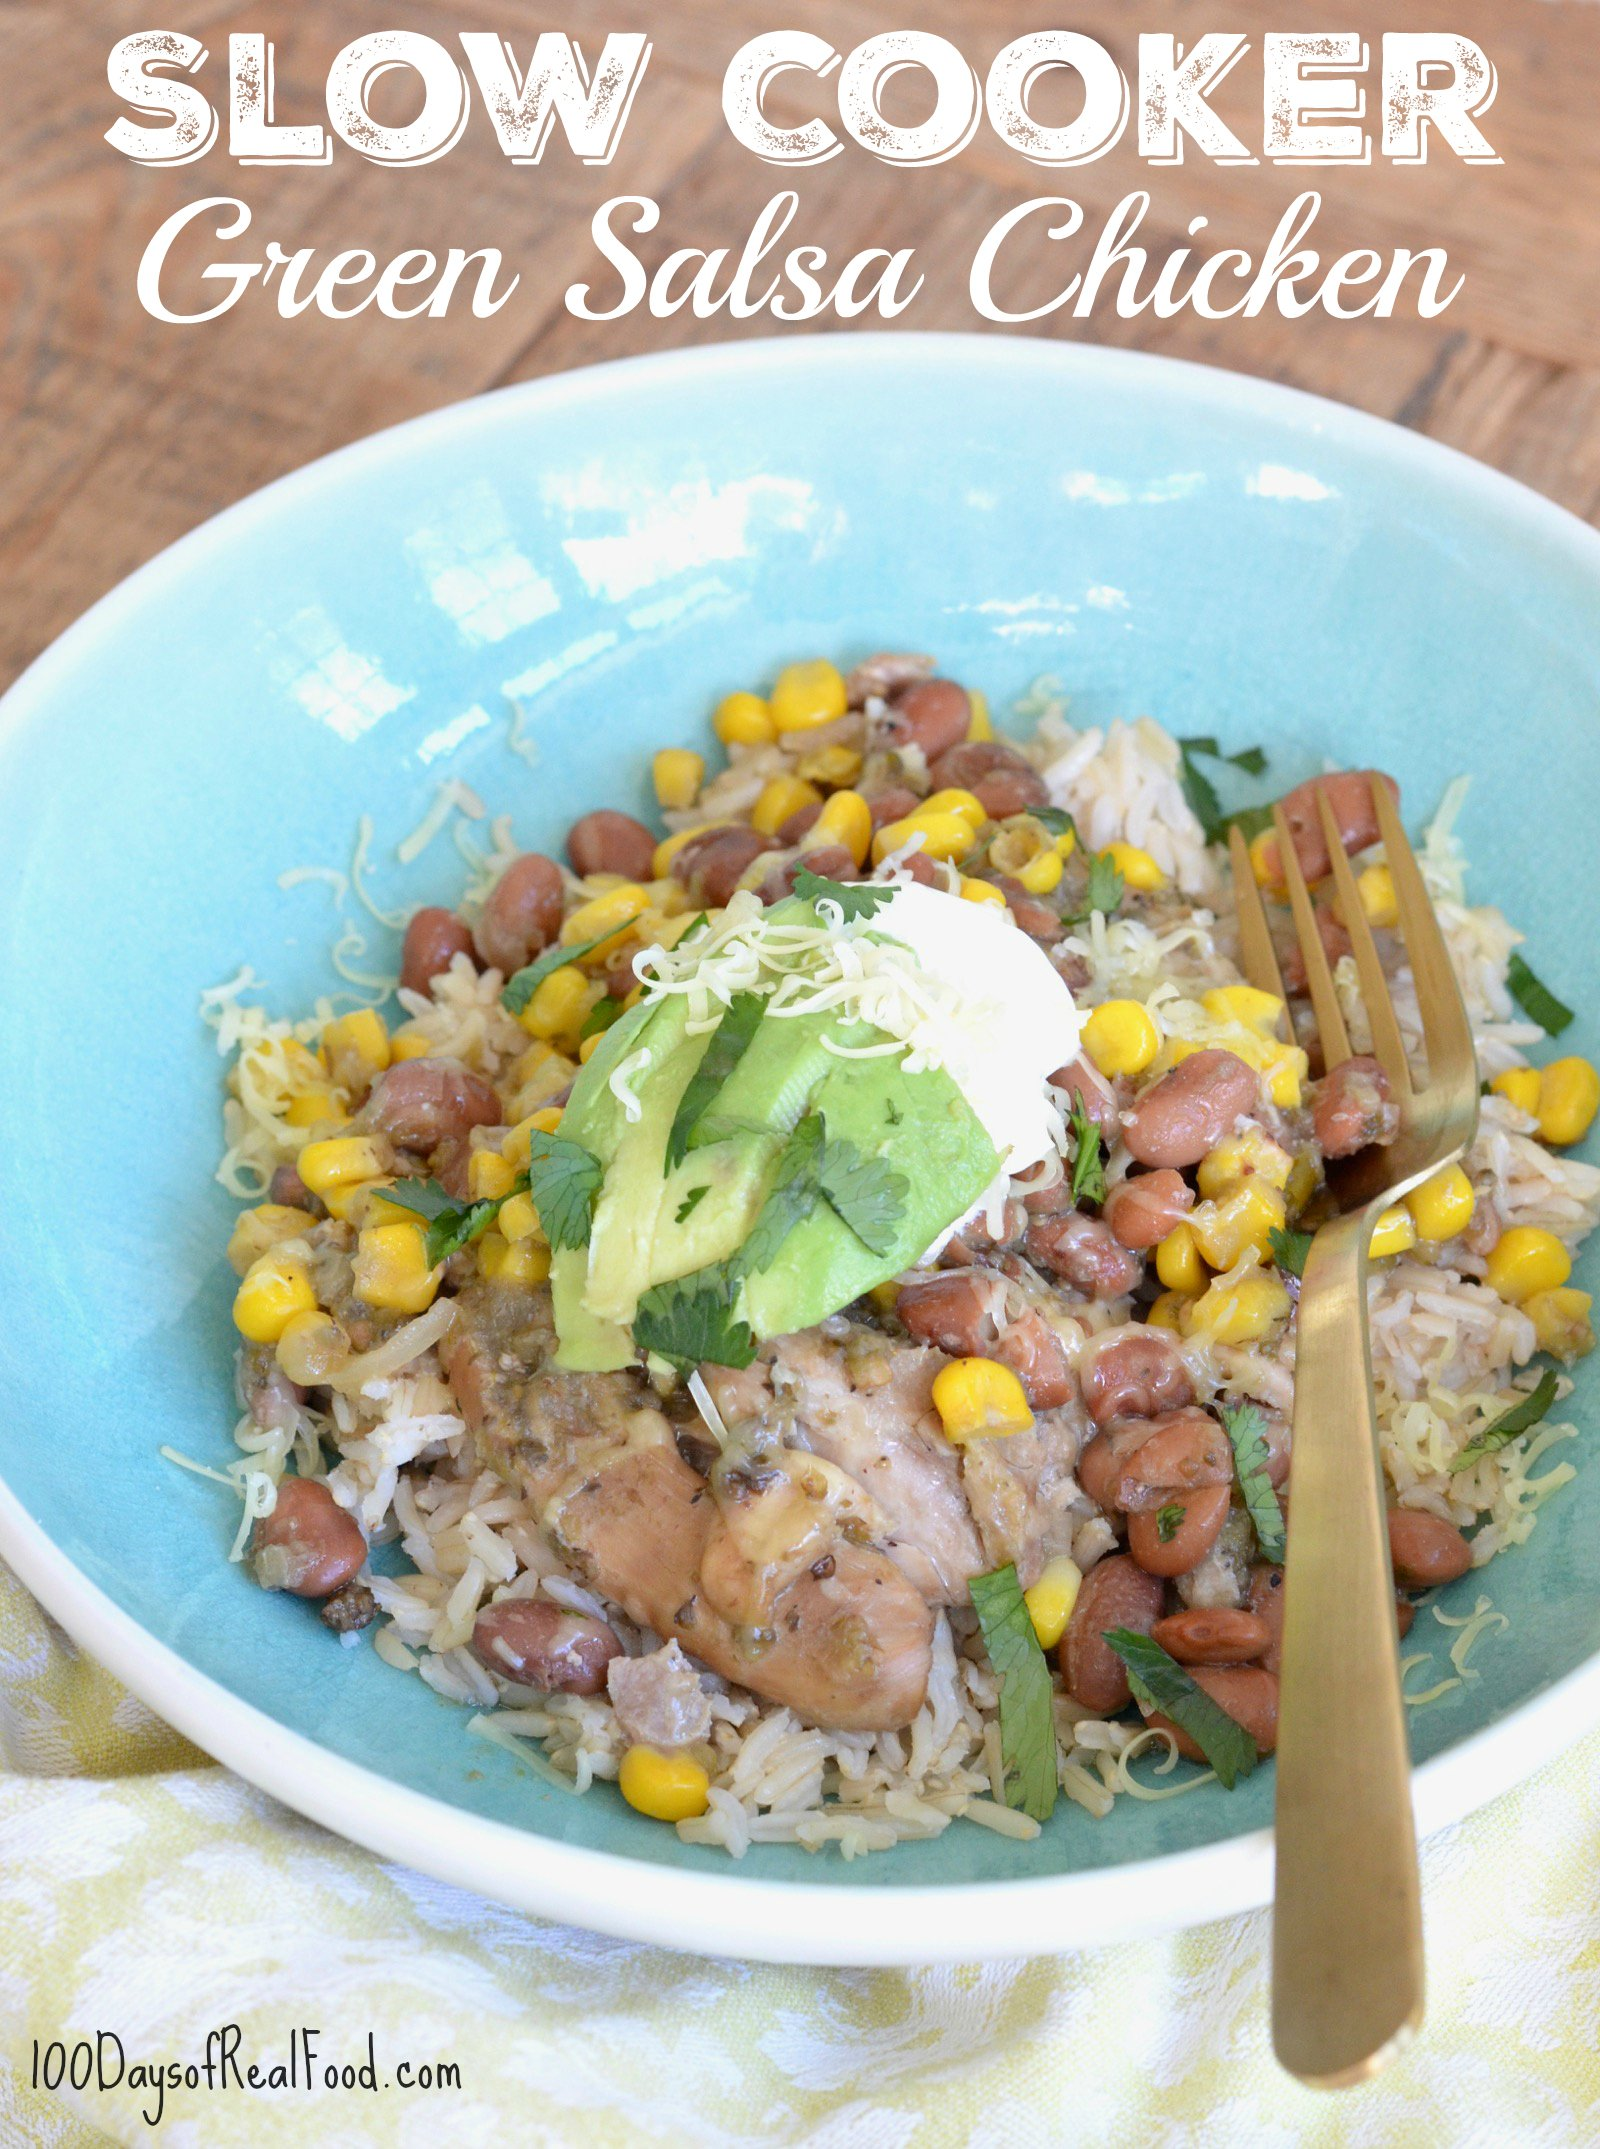 Slow Cooker Green Salsa Chicken in blue bowl on a table.